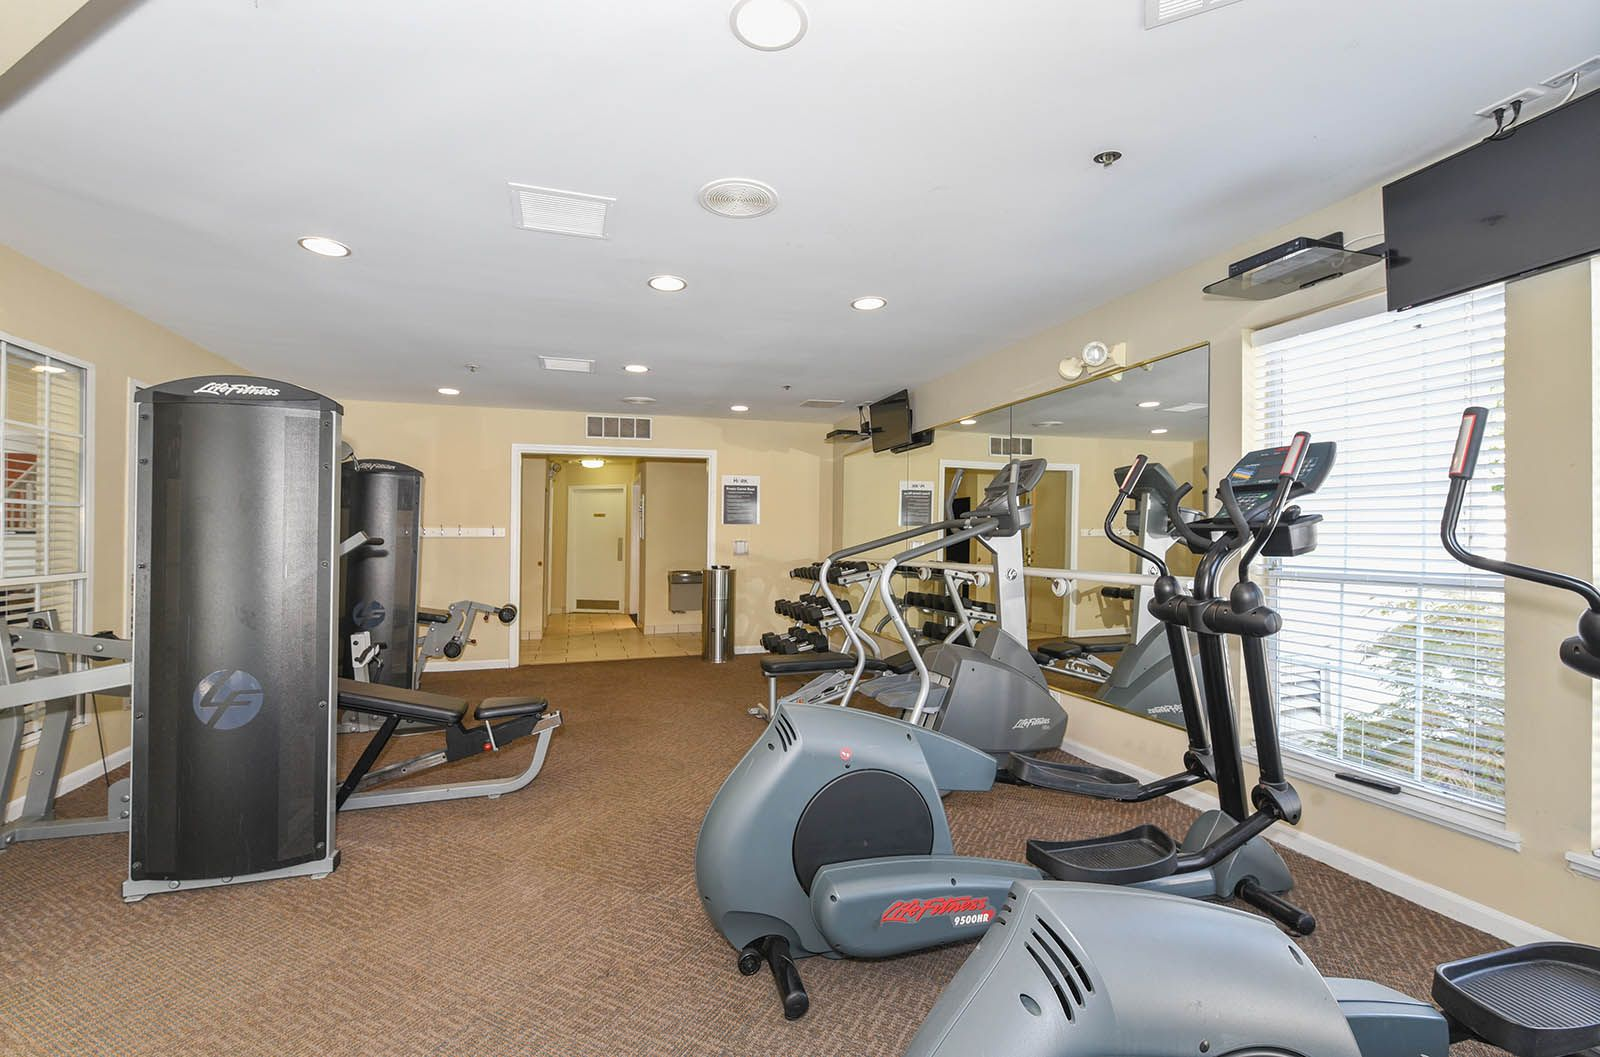 Get Your Sweat On In Our State Of The Art 24 Hour Fitness Center Themark Illinois Apartments For Rent Bedroom Floor Plans Bedroom Flooring